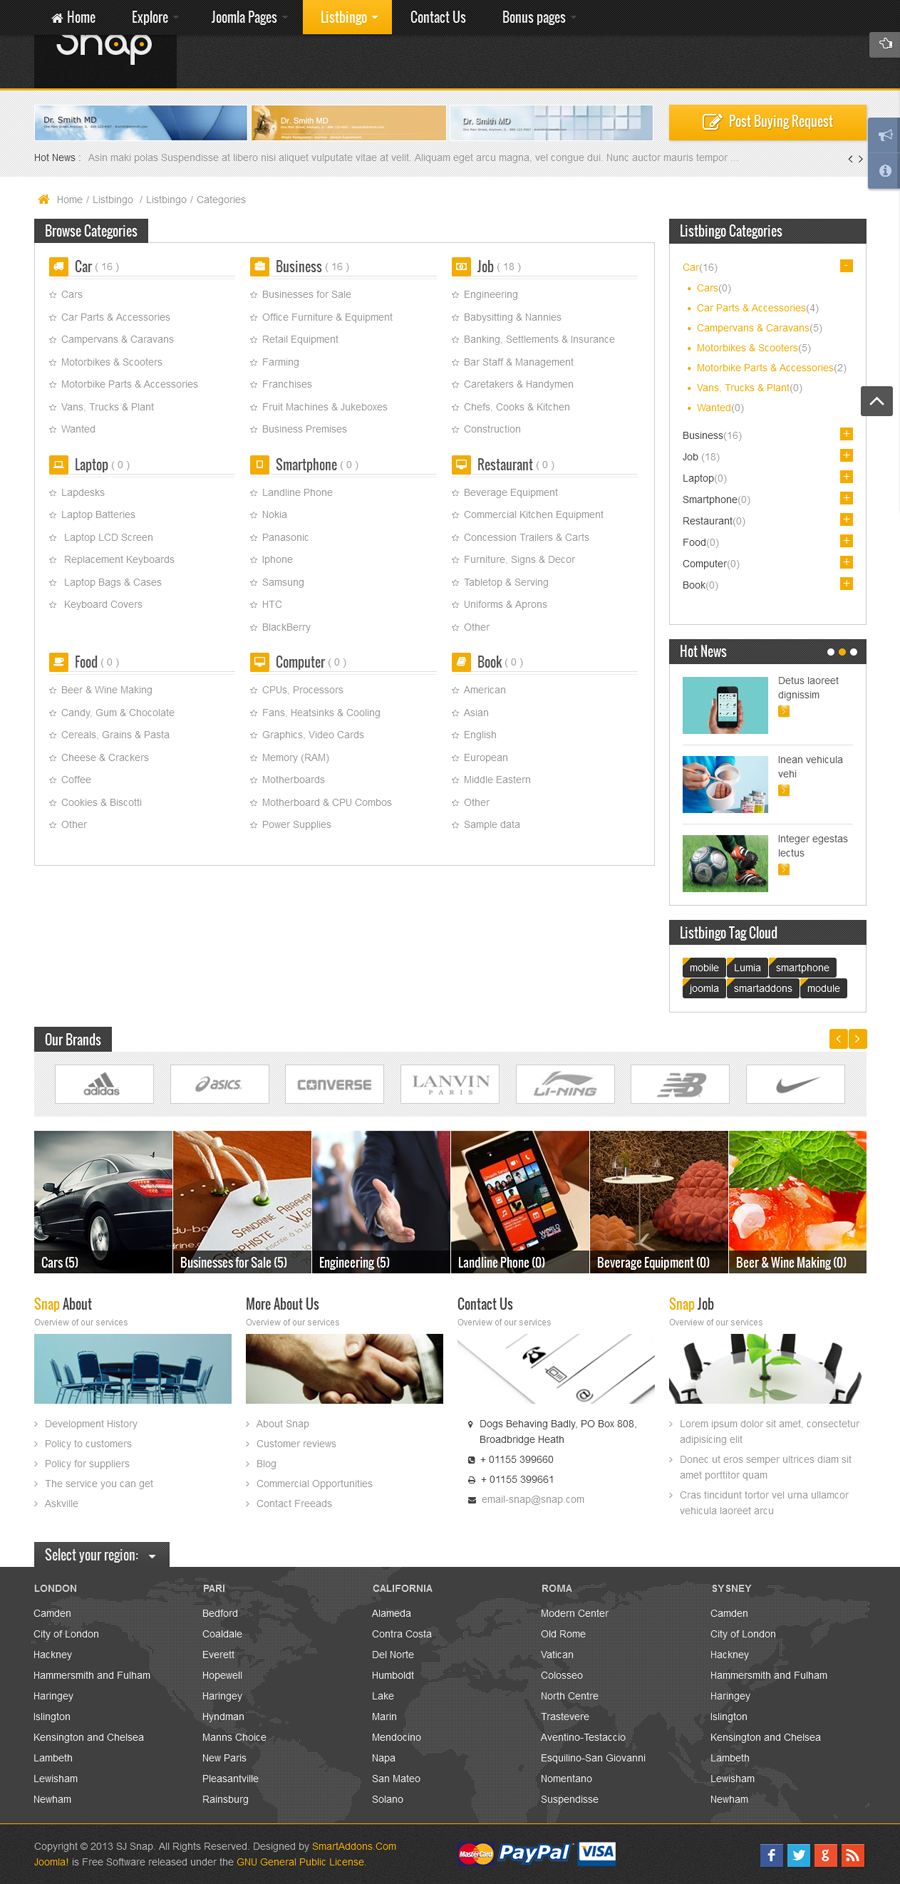 SJ Snap - Responsive Joomla Classified Template - 10-listbingo-page.png